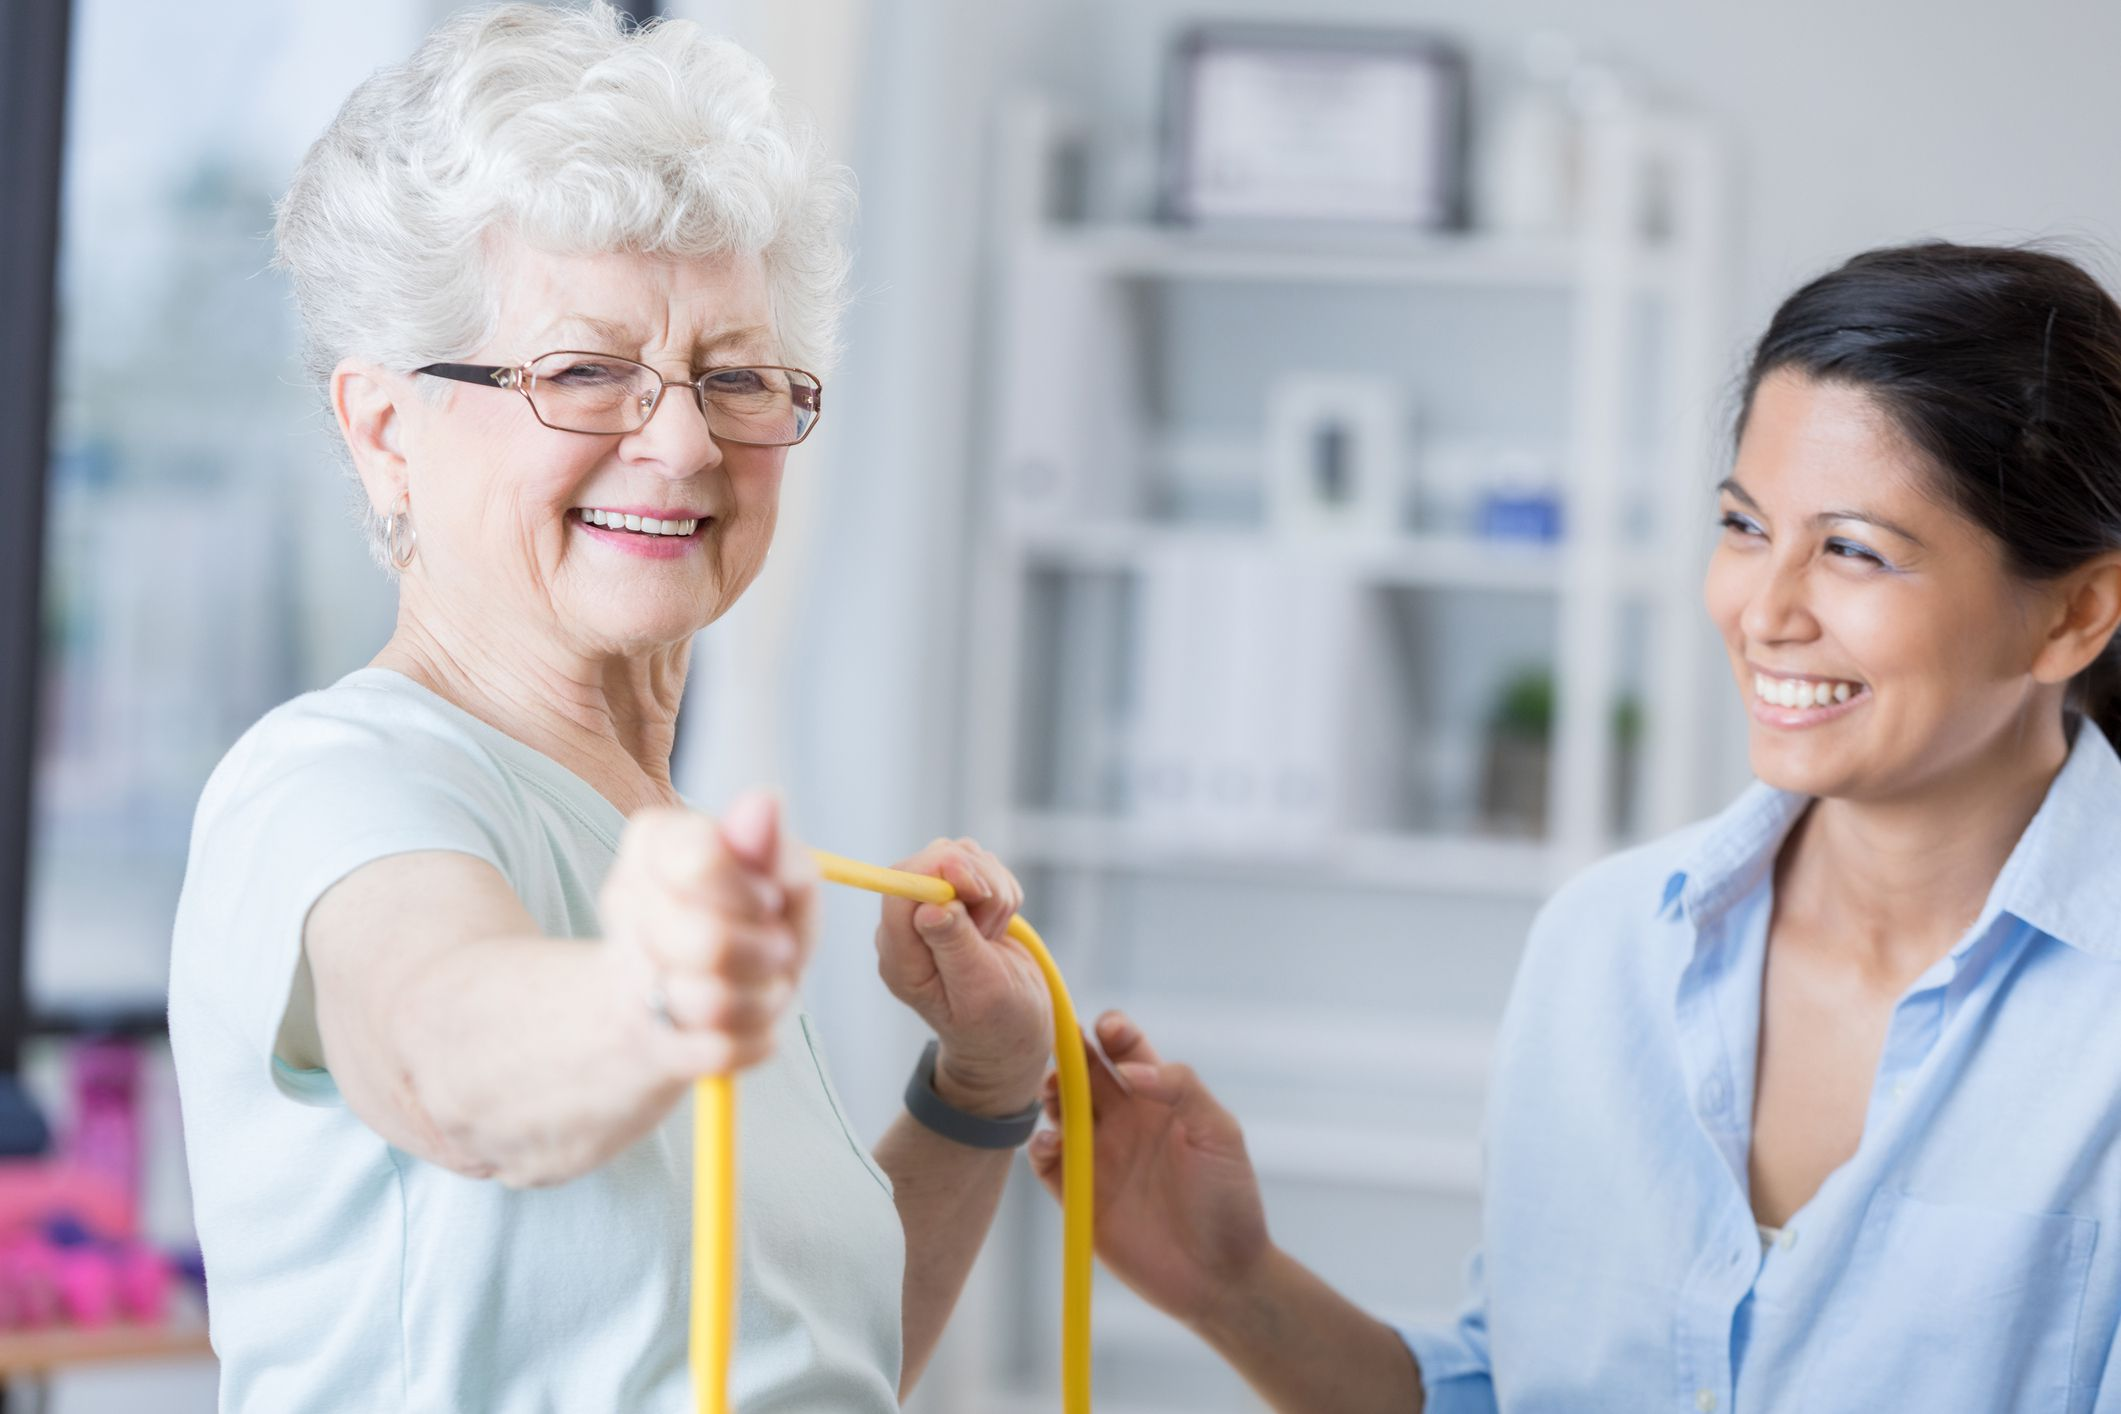 Treating Dyskinesia in Parkinson's Disease With DBS